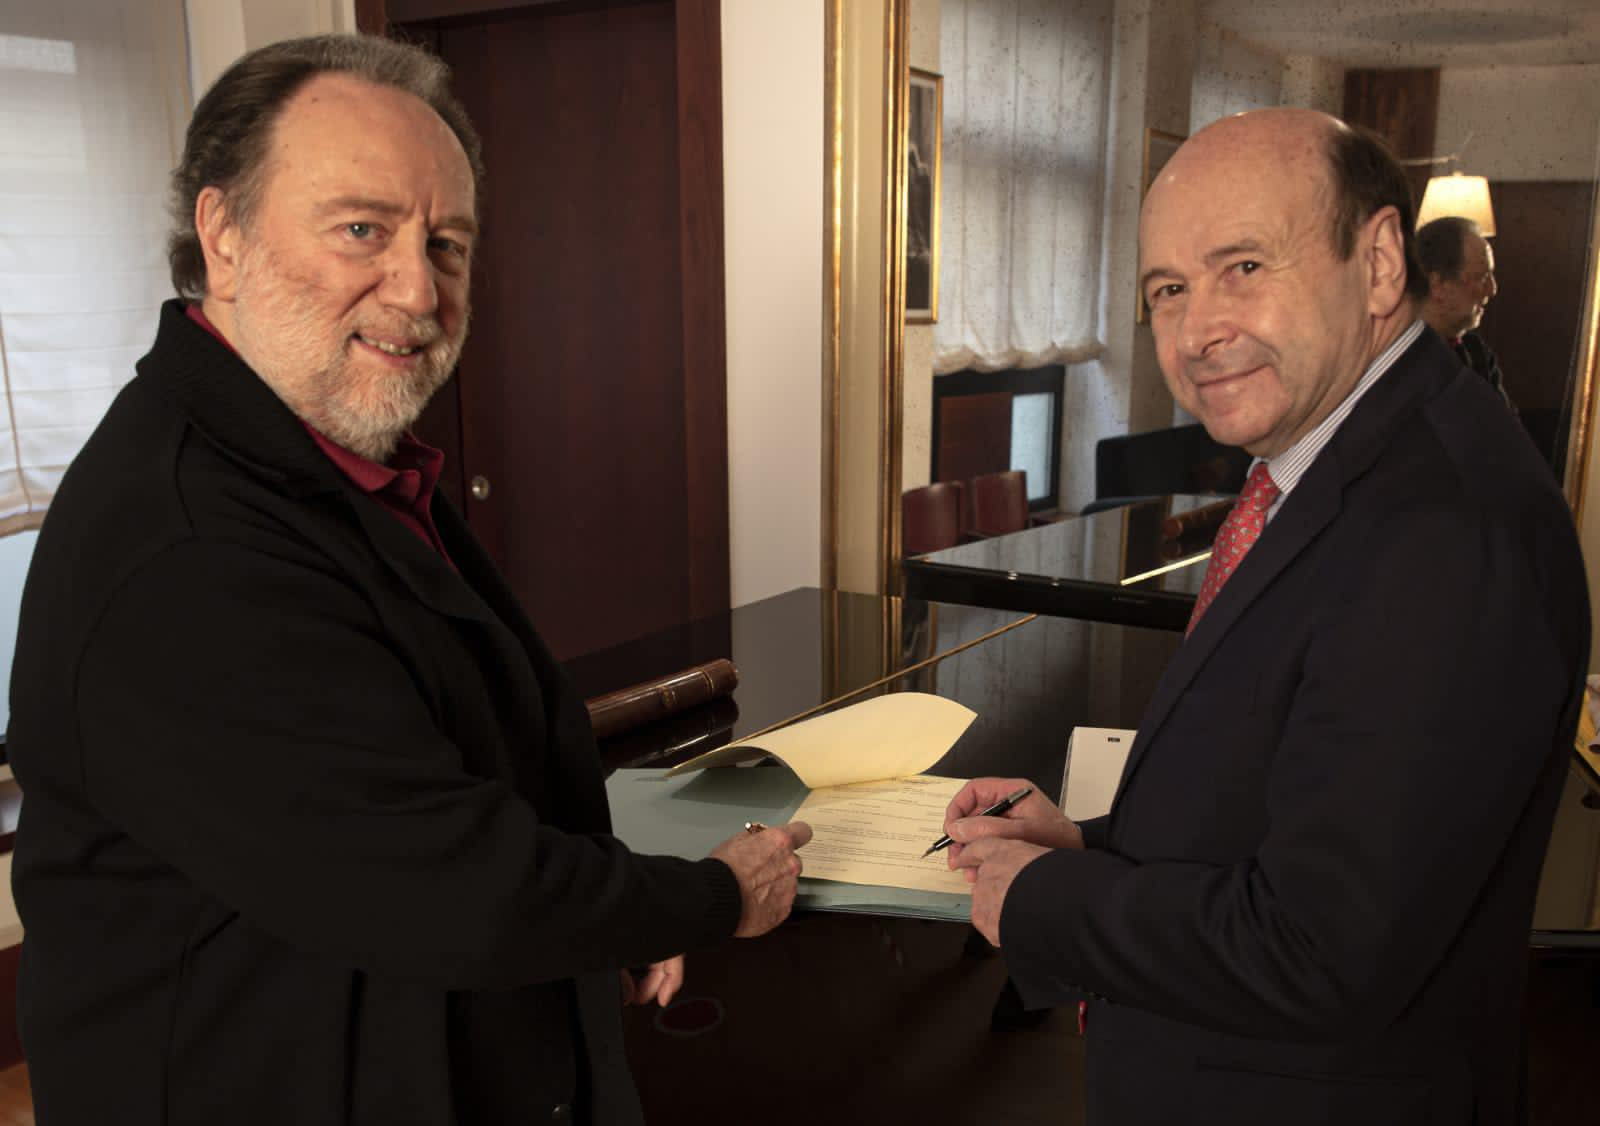 Just in: La Scala renews Chailly